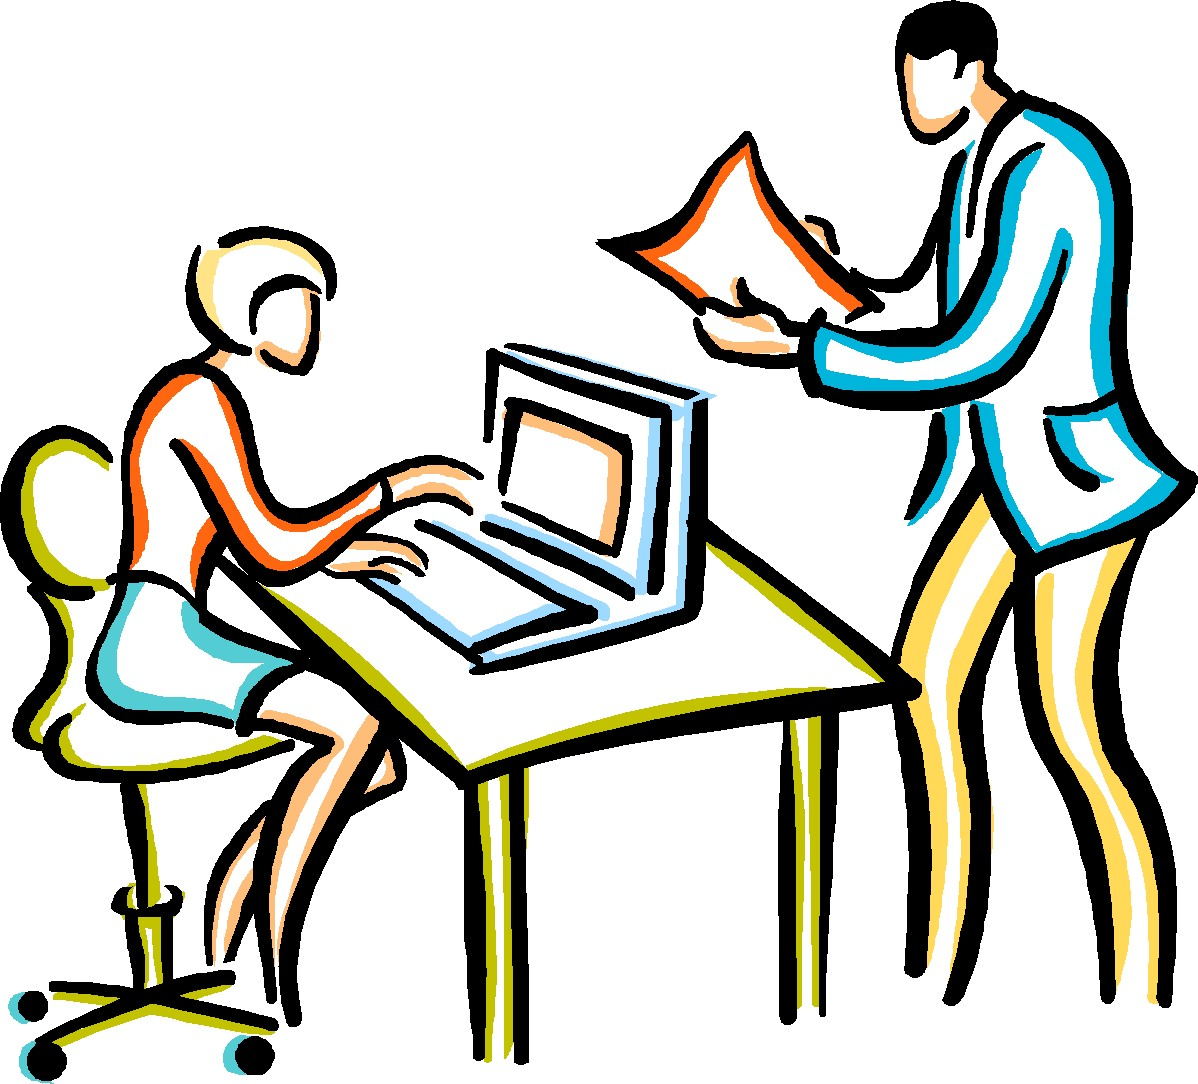 Test Taking Clip Art - Cliparts.co